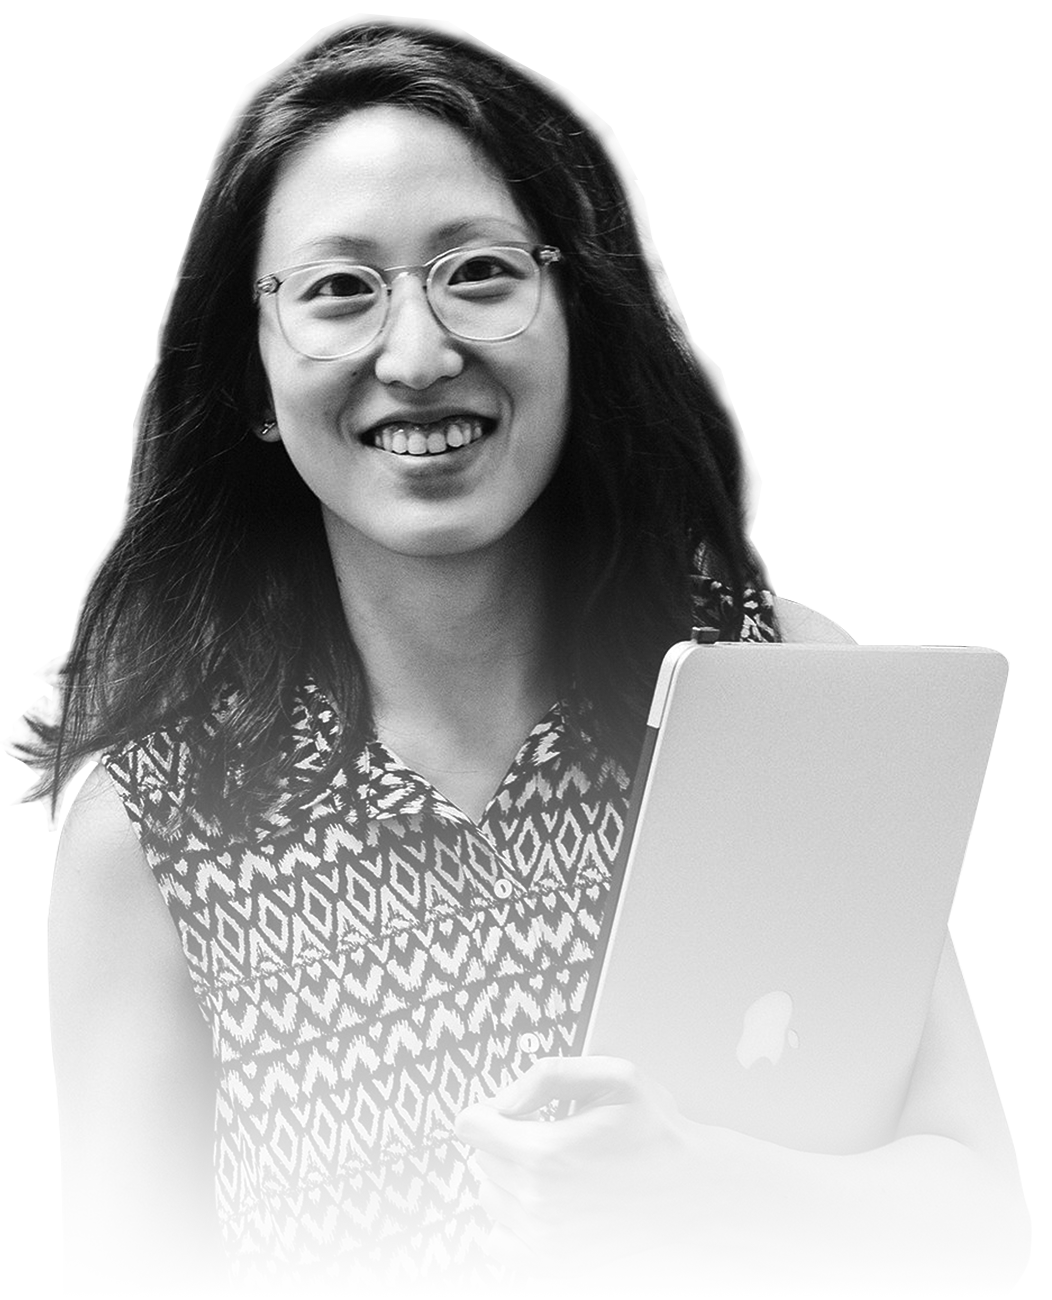 Young Asian woman holding laptop smiling